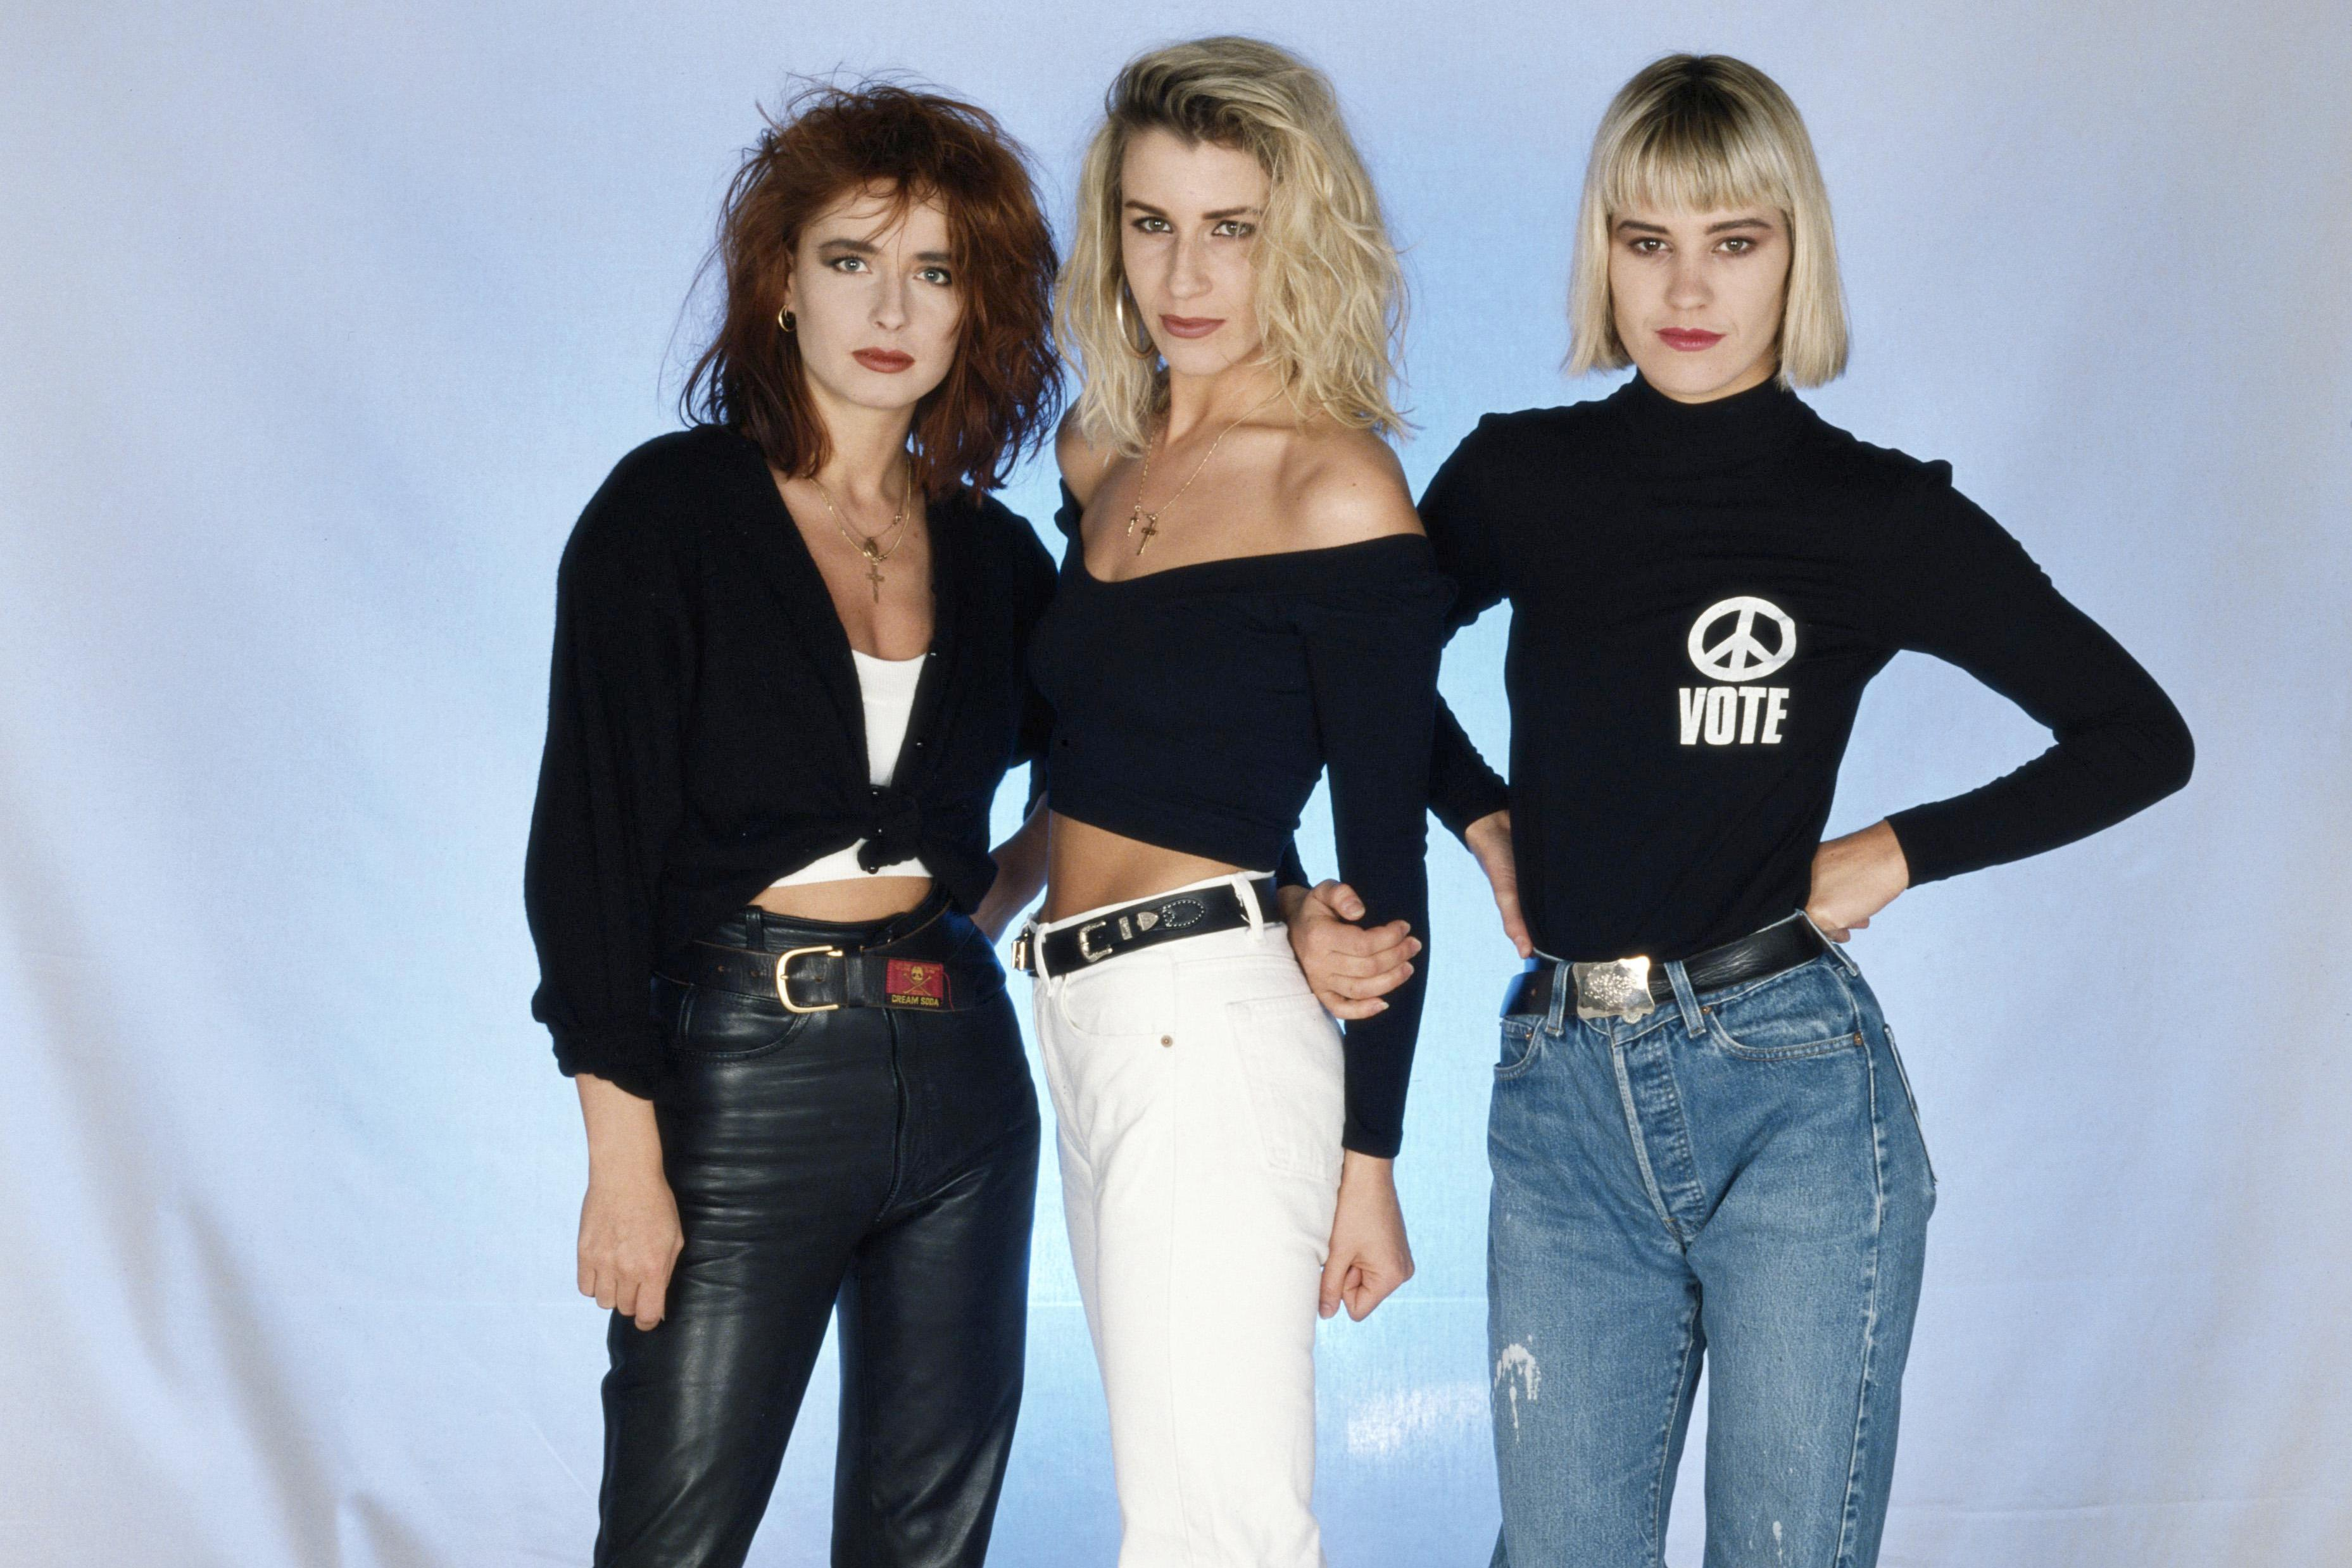 when is the bananarama 2017 uk tour and is siobhan fahey